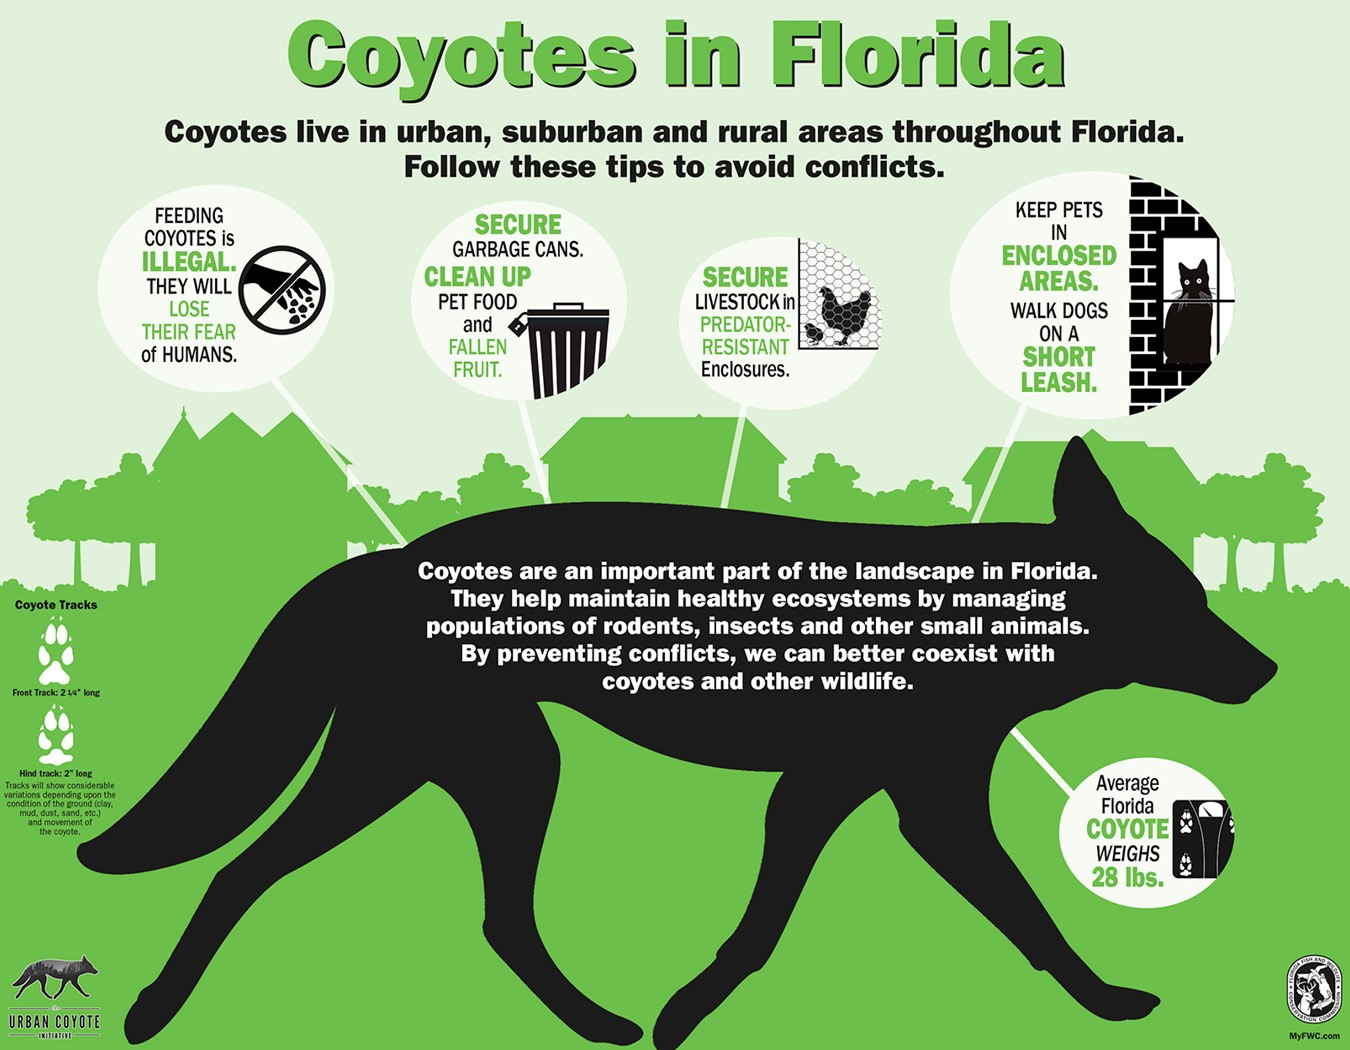 Infographic regarding coyotes in Florida linking to FL Fish and Wildlife  Conservation Commission